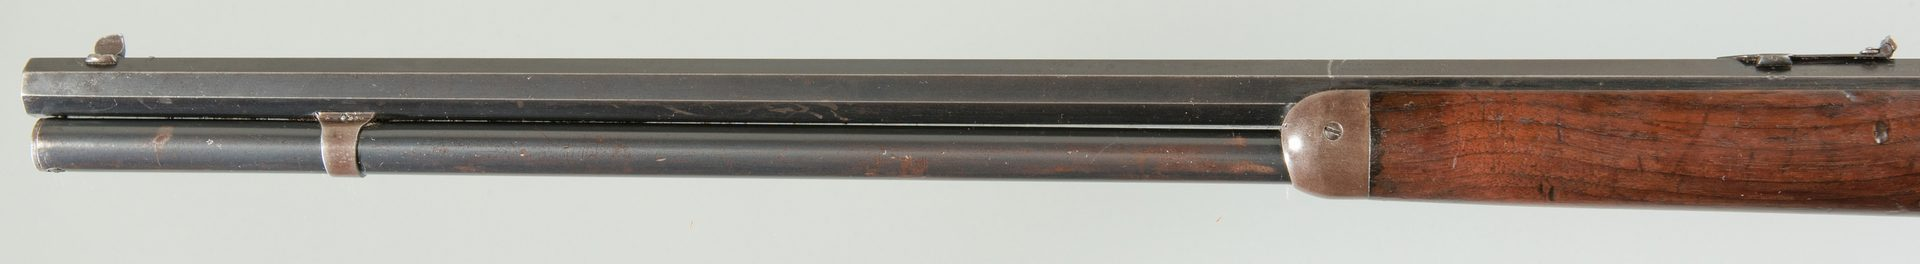 Lot 803: Winchester Model 1894, 30-30 Win Lever Action Rifle